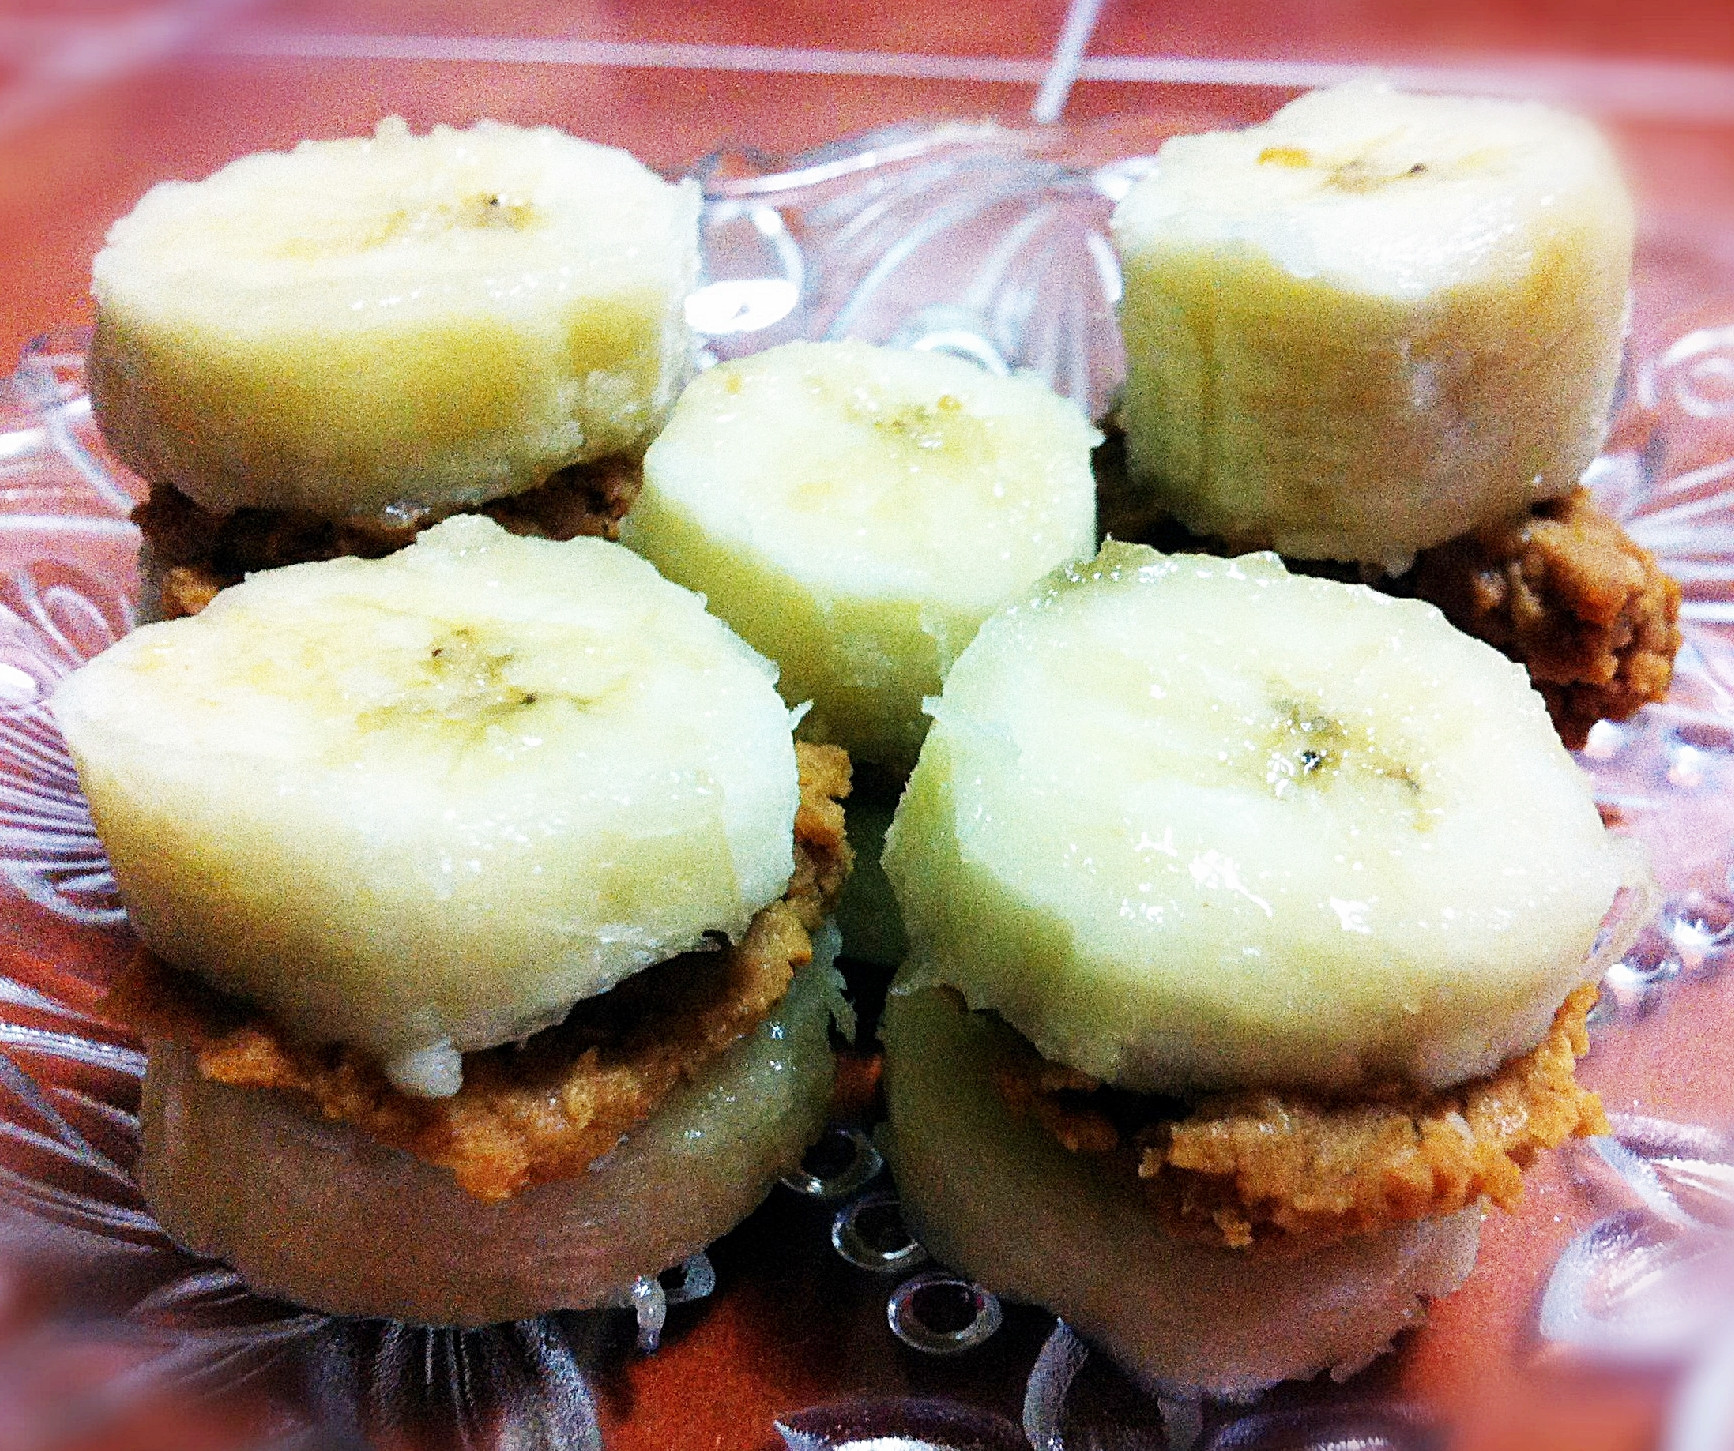 Healthy Banana Desserts  Healthy Dessert Ideas Banana and Peanut Butter Bites